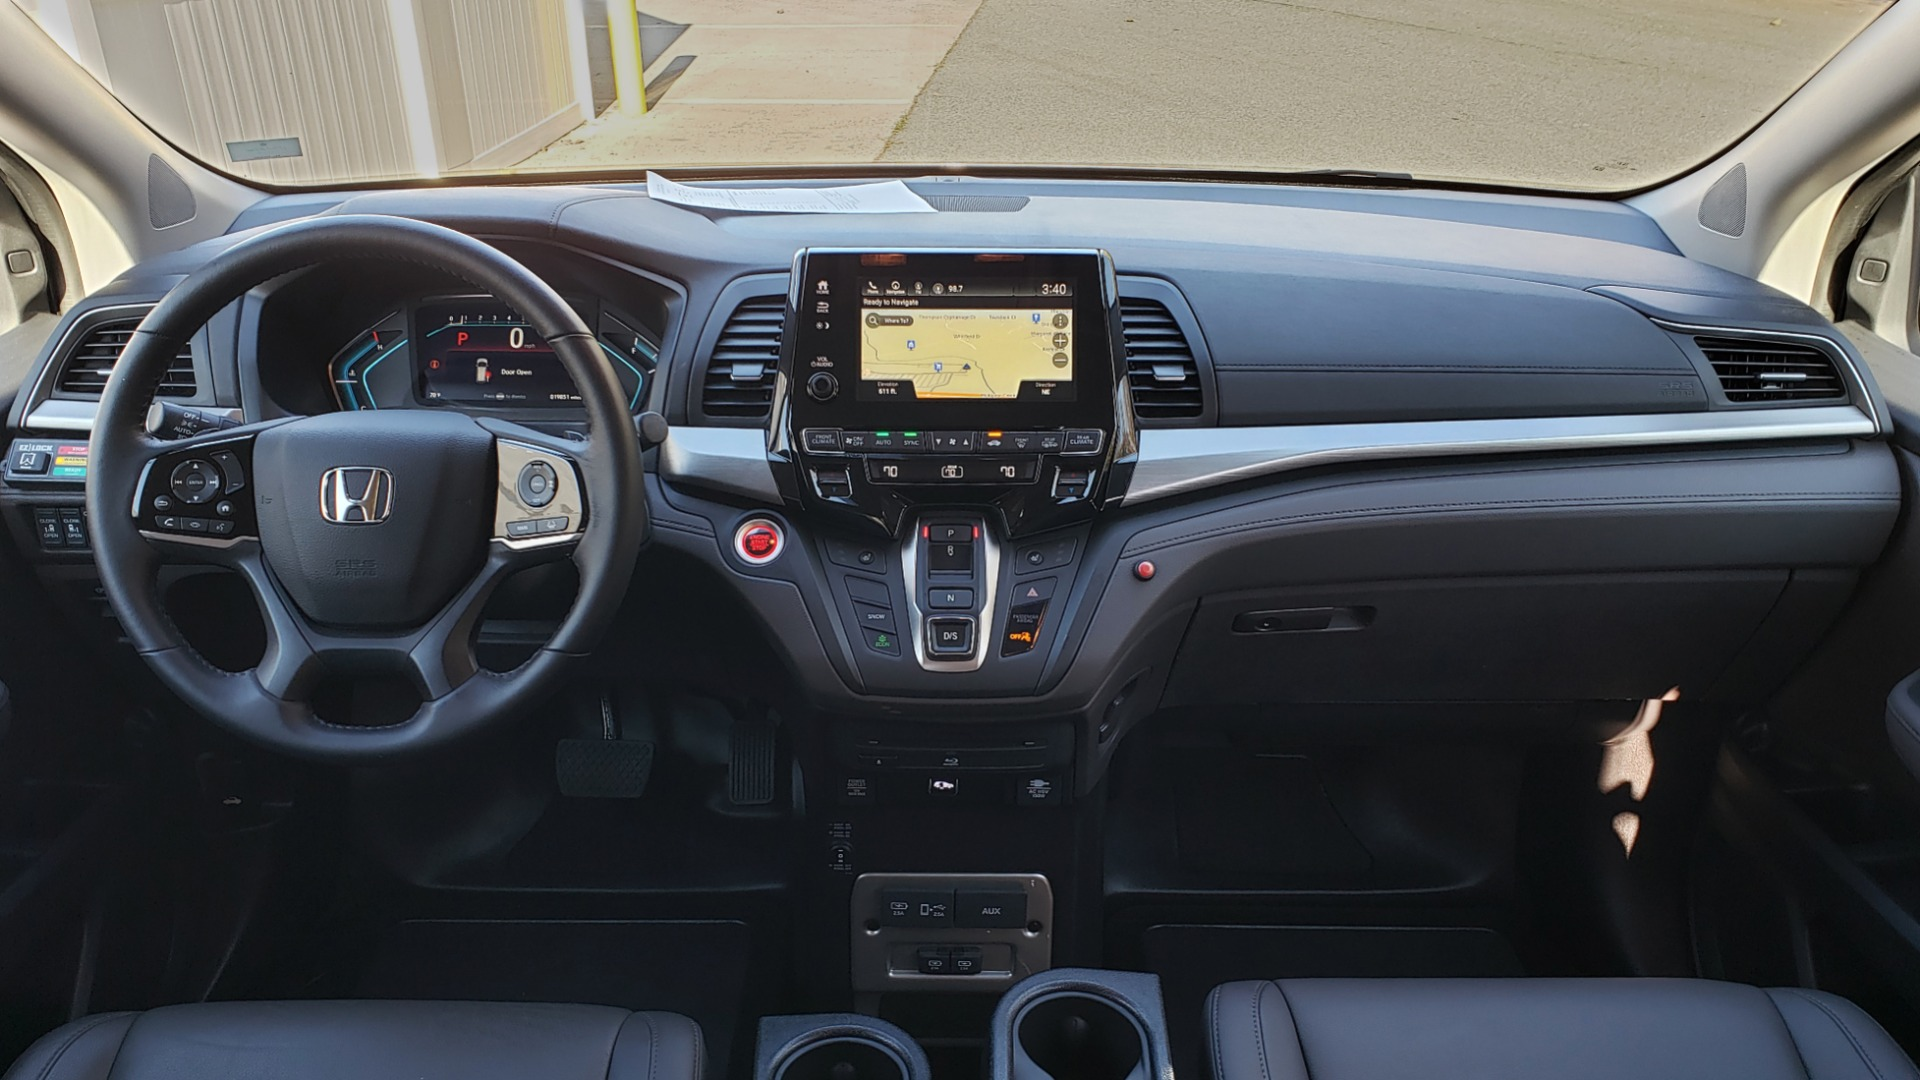 Used 2019 Honda ODYSSEY EX-L BRAUNABILITY / NAV / RES / LKA / BLUE-RAY / SUNROOF / REARVIEW for sale $49,999 at Formula Imports in Charlotte NC 28227 47